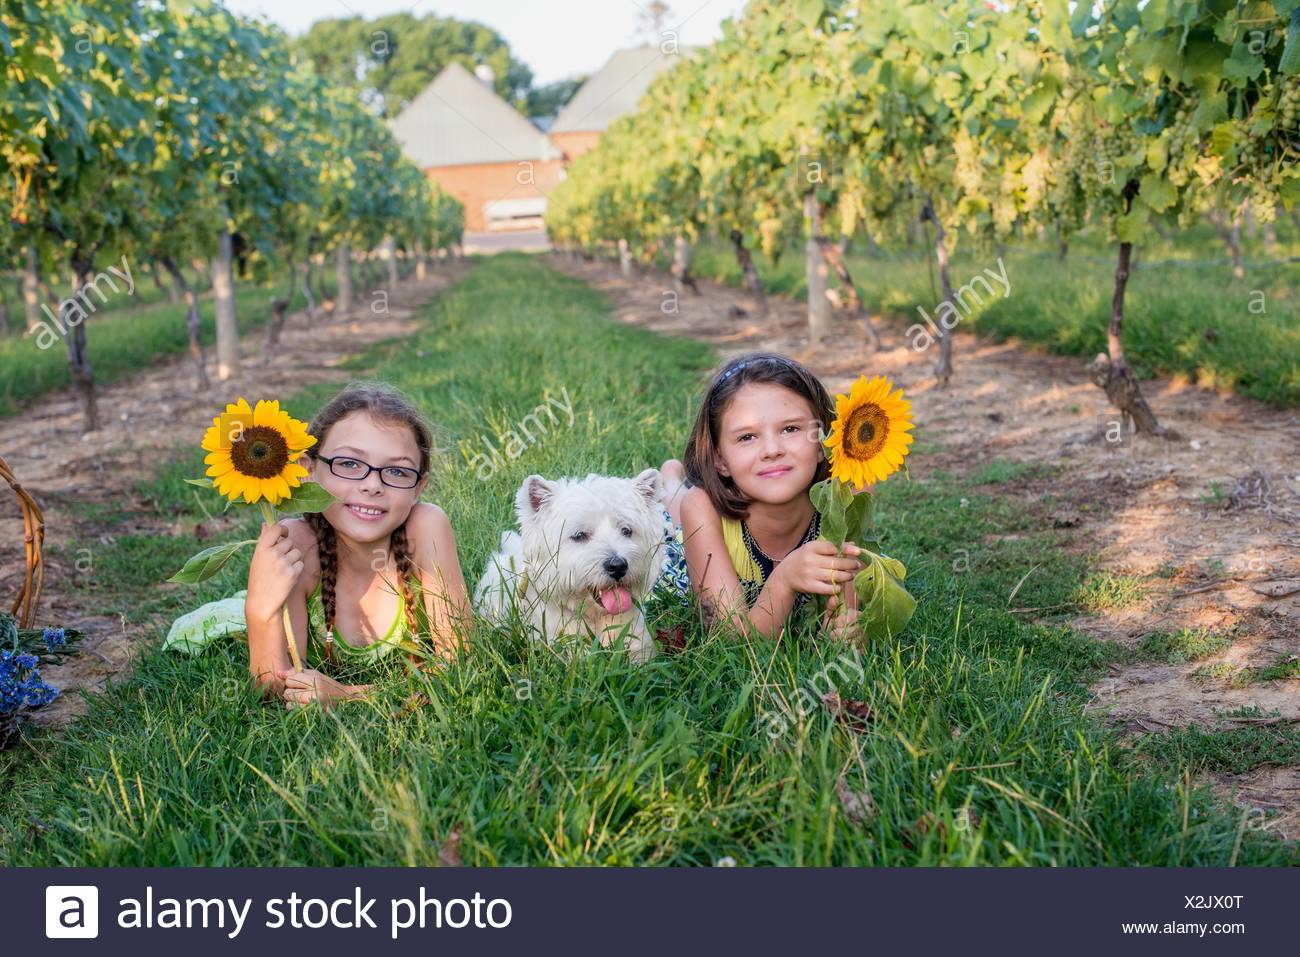 Two young girls lying on grass with pet dog, holding sunflowers Stock Photo